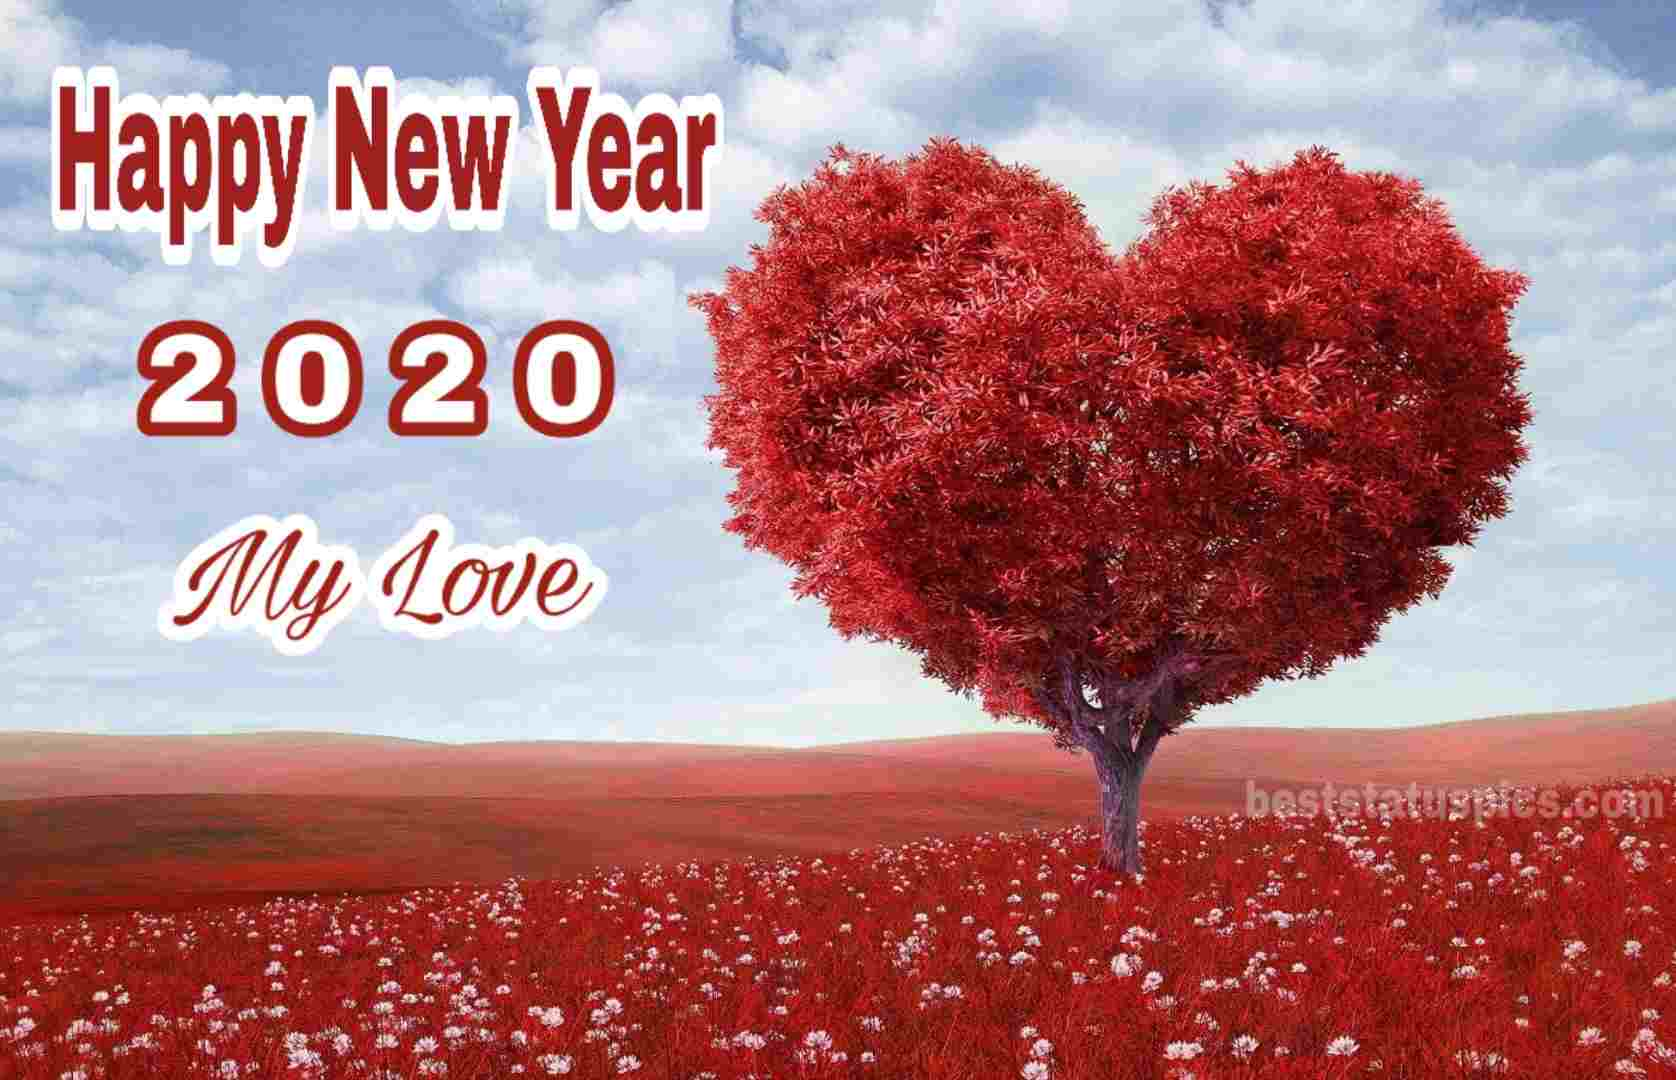 Happy New Year 2020 Image with love heart flowers